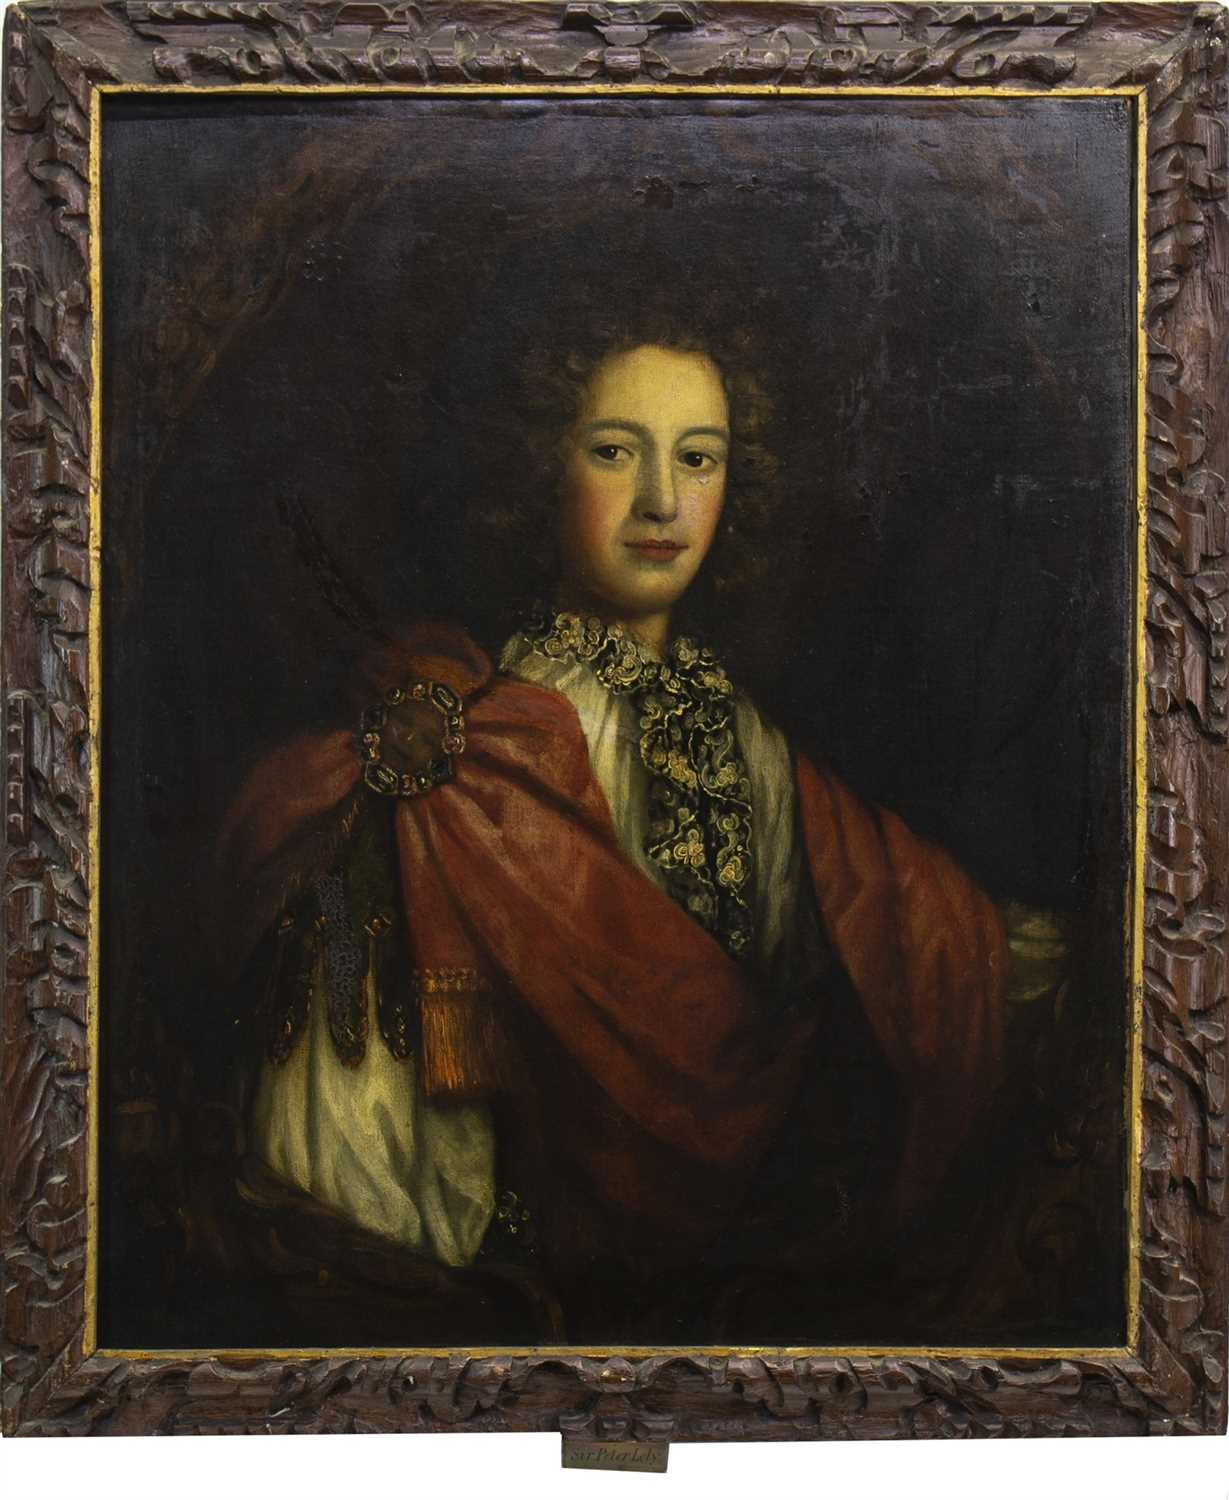 Lot 438-PORTRAIT OF A YOUNG GENTLEMAN, AN OIL, CIRCLE OF PETER LELY